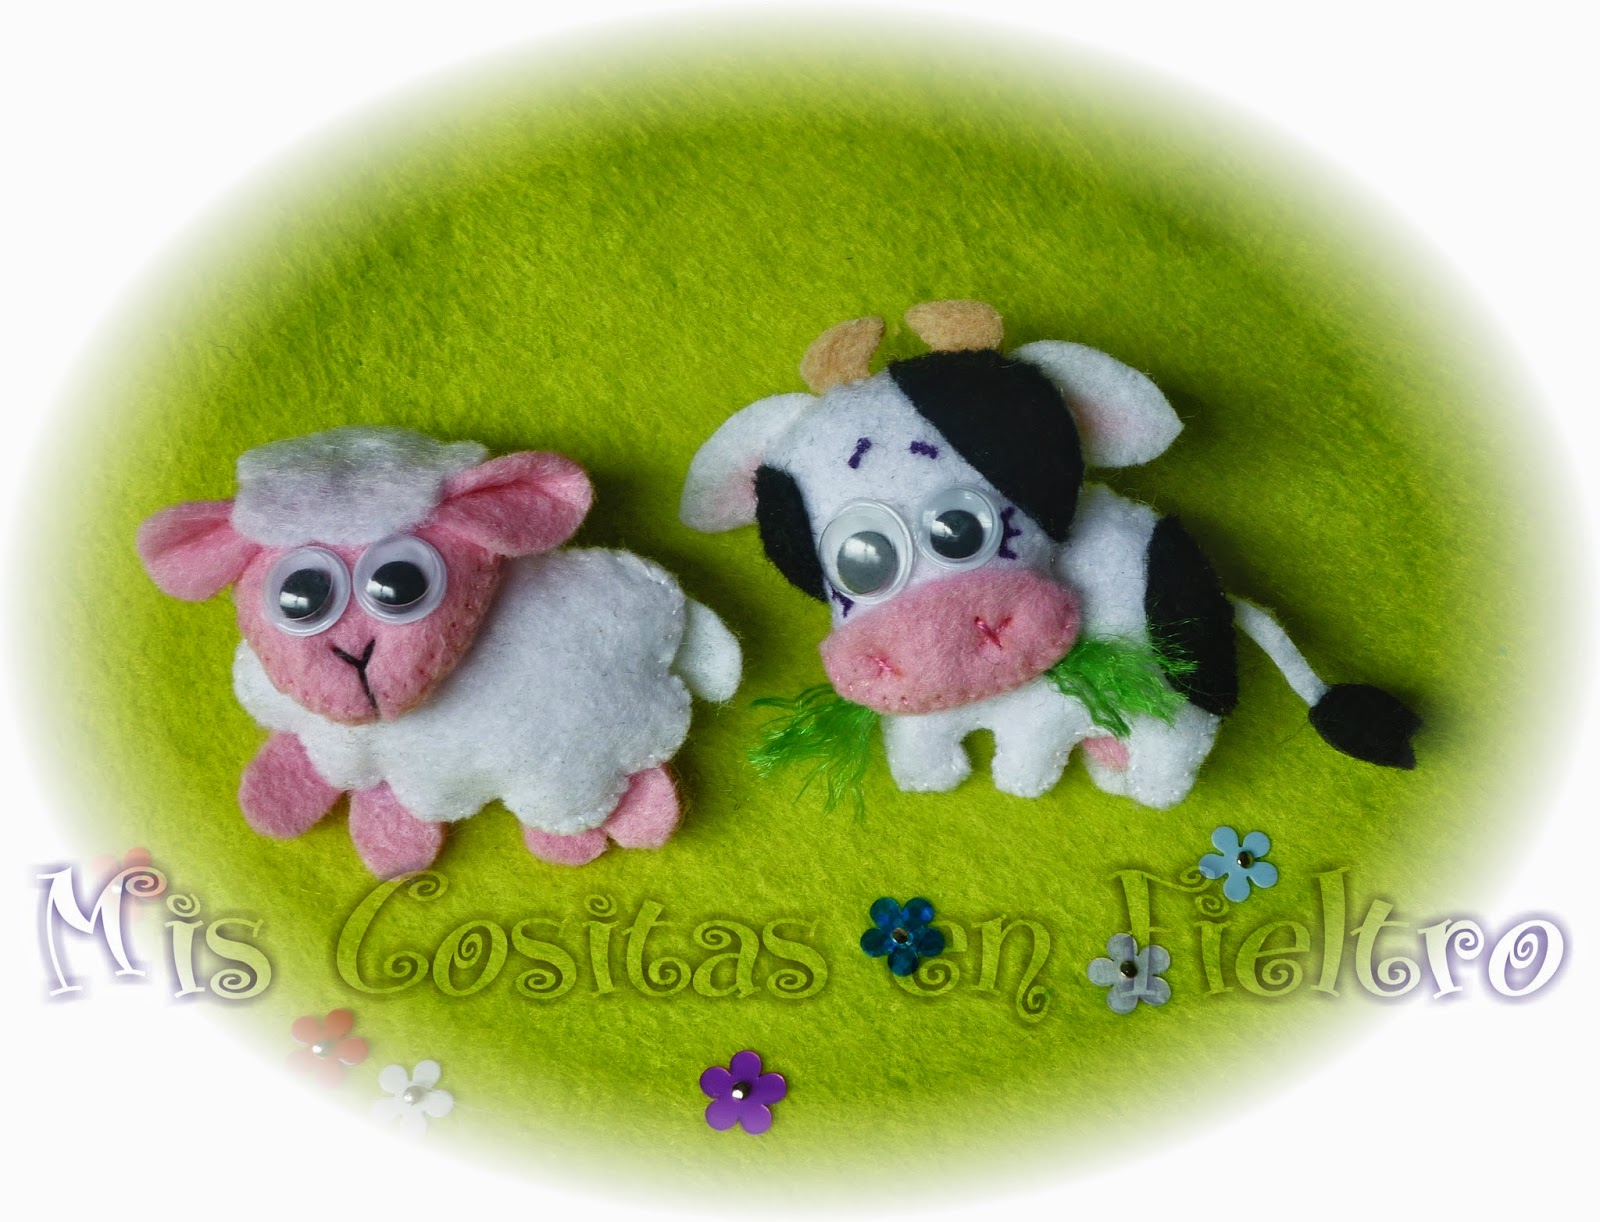 animal de fieltro, broche de fieltro, felt animal, felt art, oveja, sheep, ovella, ovelha, vaca, cow